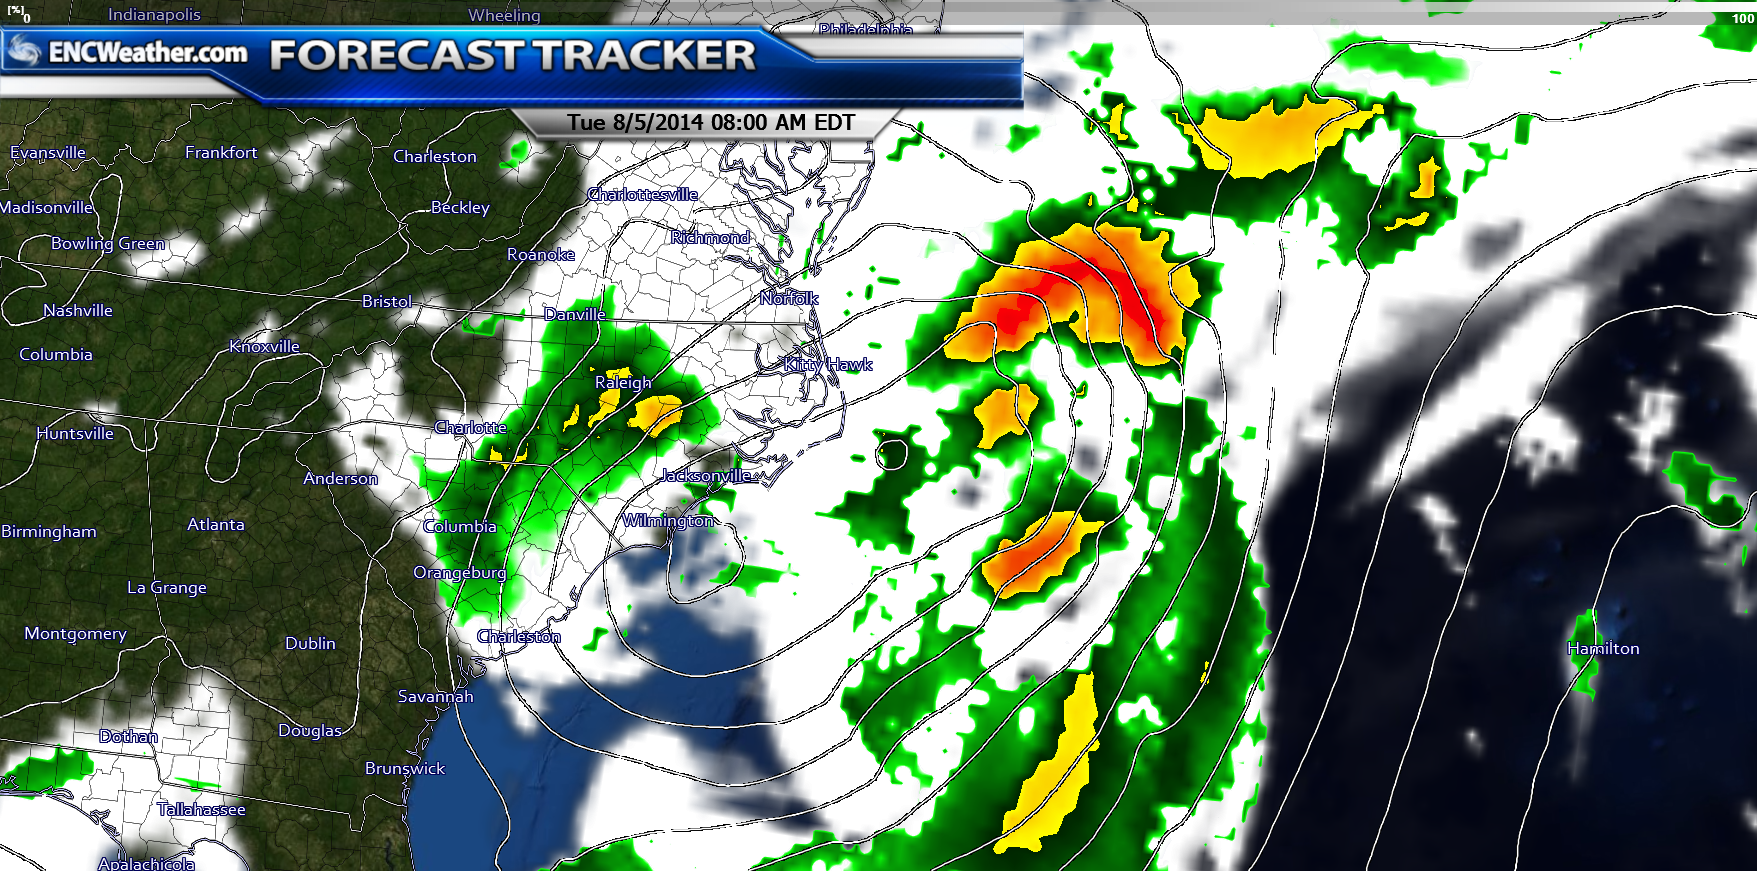 In the NAM forecast model solution, the surface low and Bertha could merge off the NC coast.